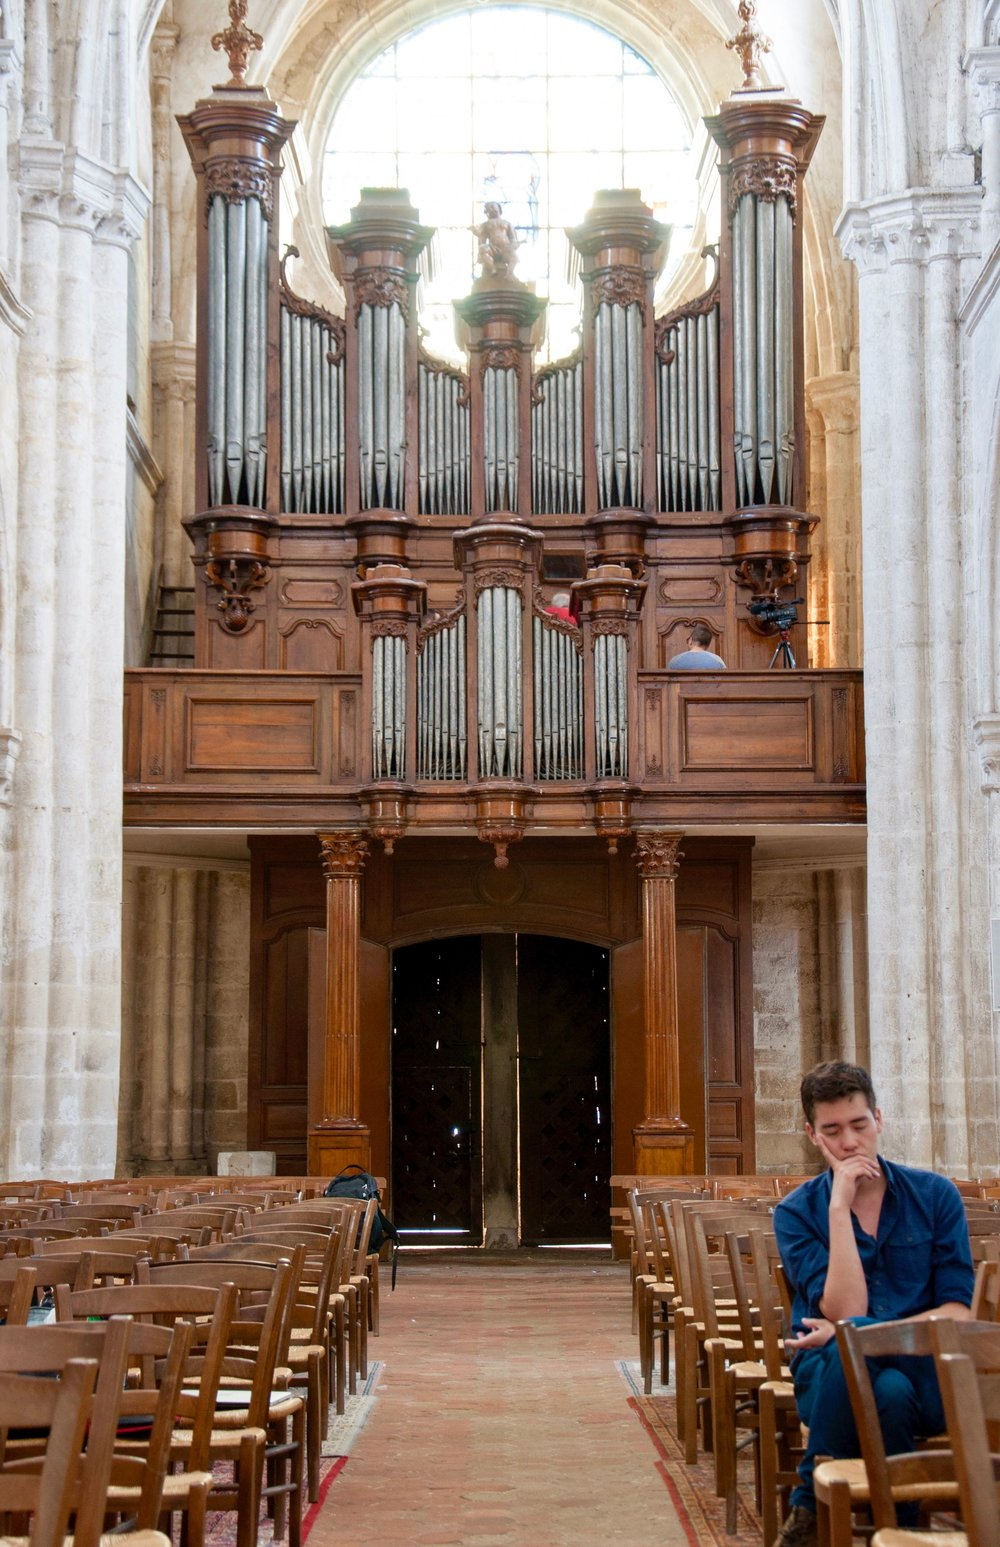 Noel listening to the rich 8' foundations of the organ at Rozay-en-Brie!